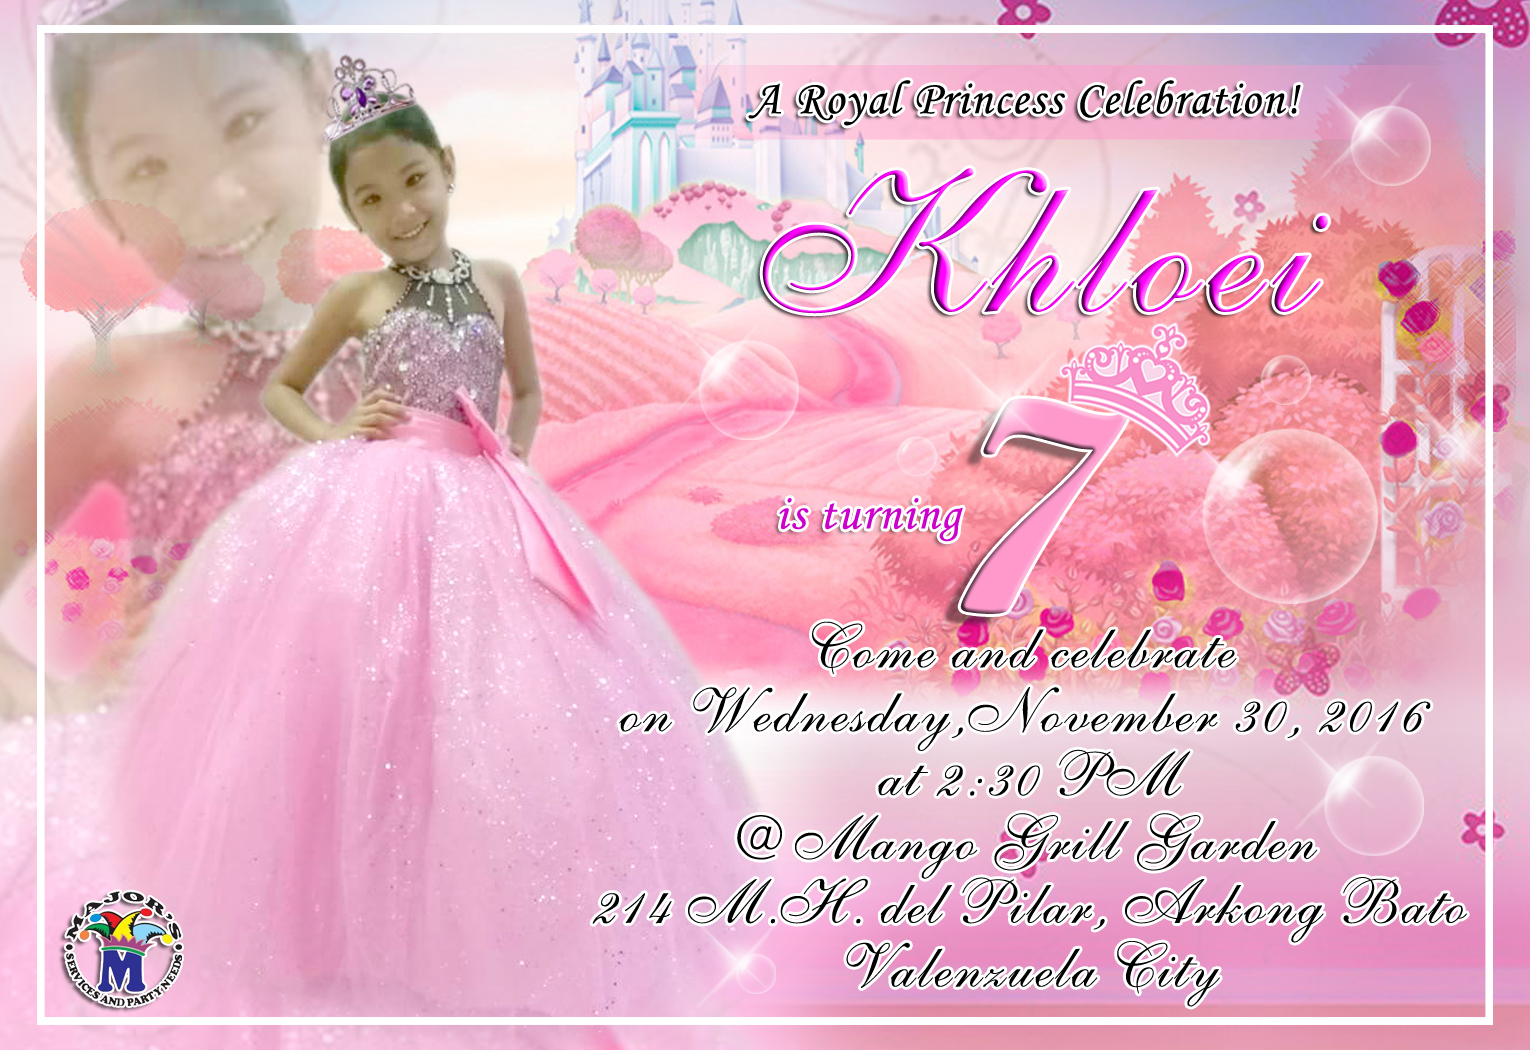 SAICHARD TECHNICAL AND GRAPHIC DESIGN PINK MOTIF BIRTHDAY